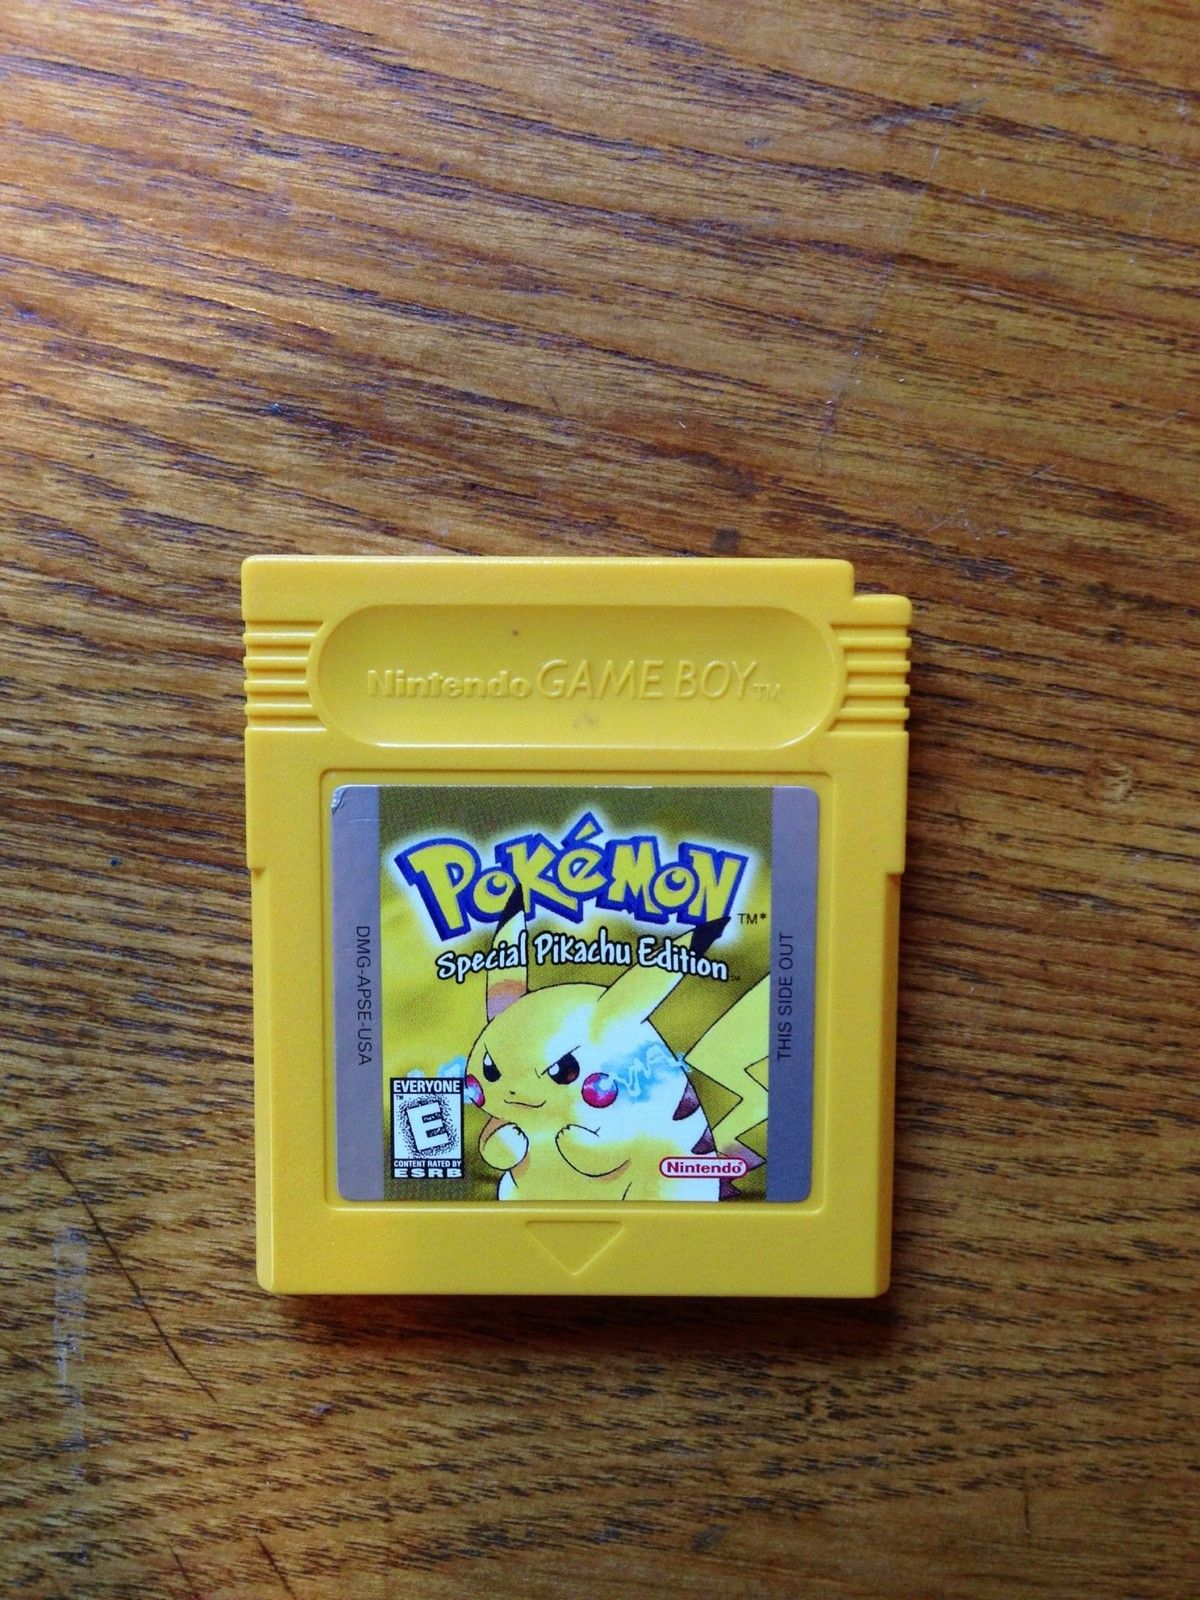 Gameboy color and pokemon yellow - Pokemon Yellow Special Pikachu Edition Nintendo Game Boy Color Cartridge